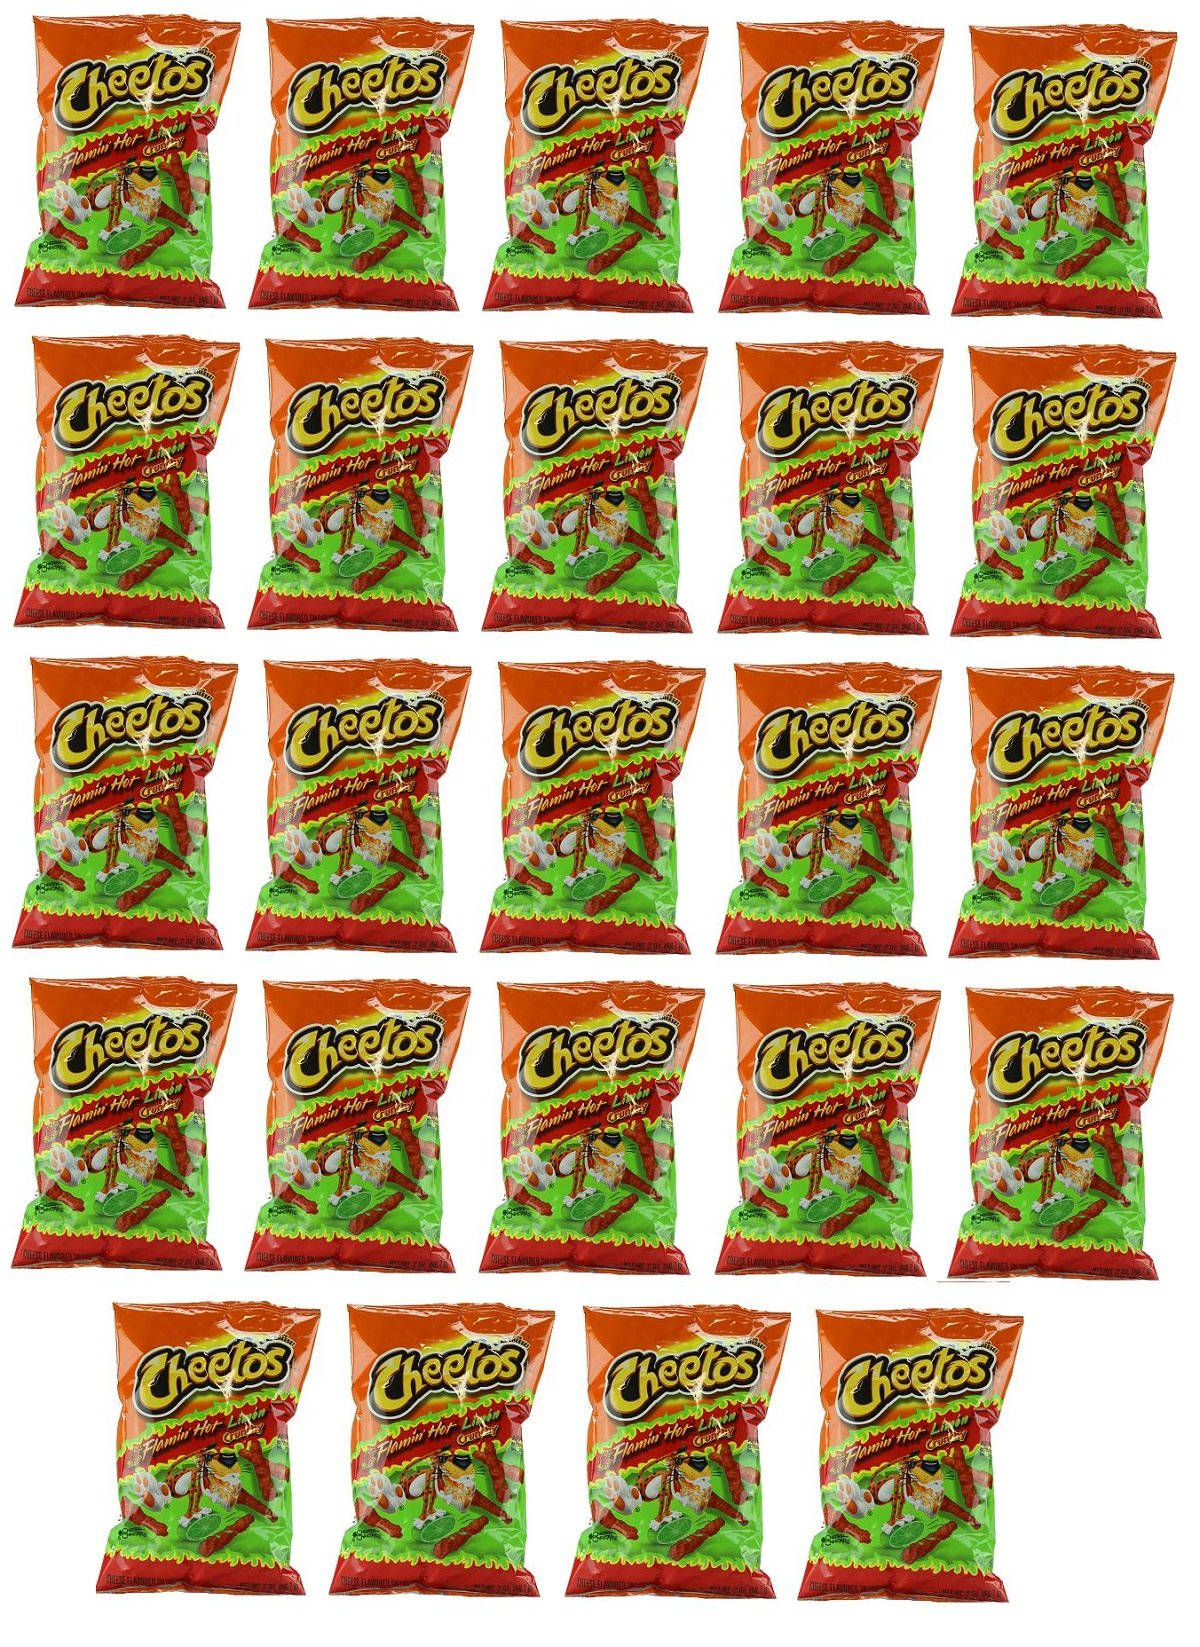 Delicious Treats Cheetos Crunchy Flamin Hot Limon 24 Bags of 2 Oz - Tj13